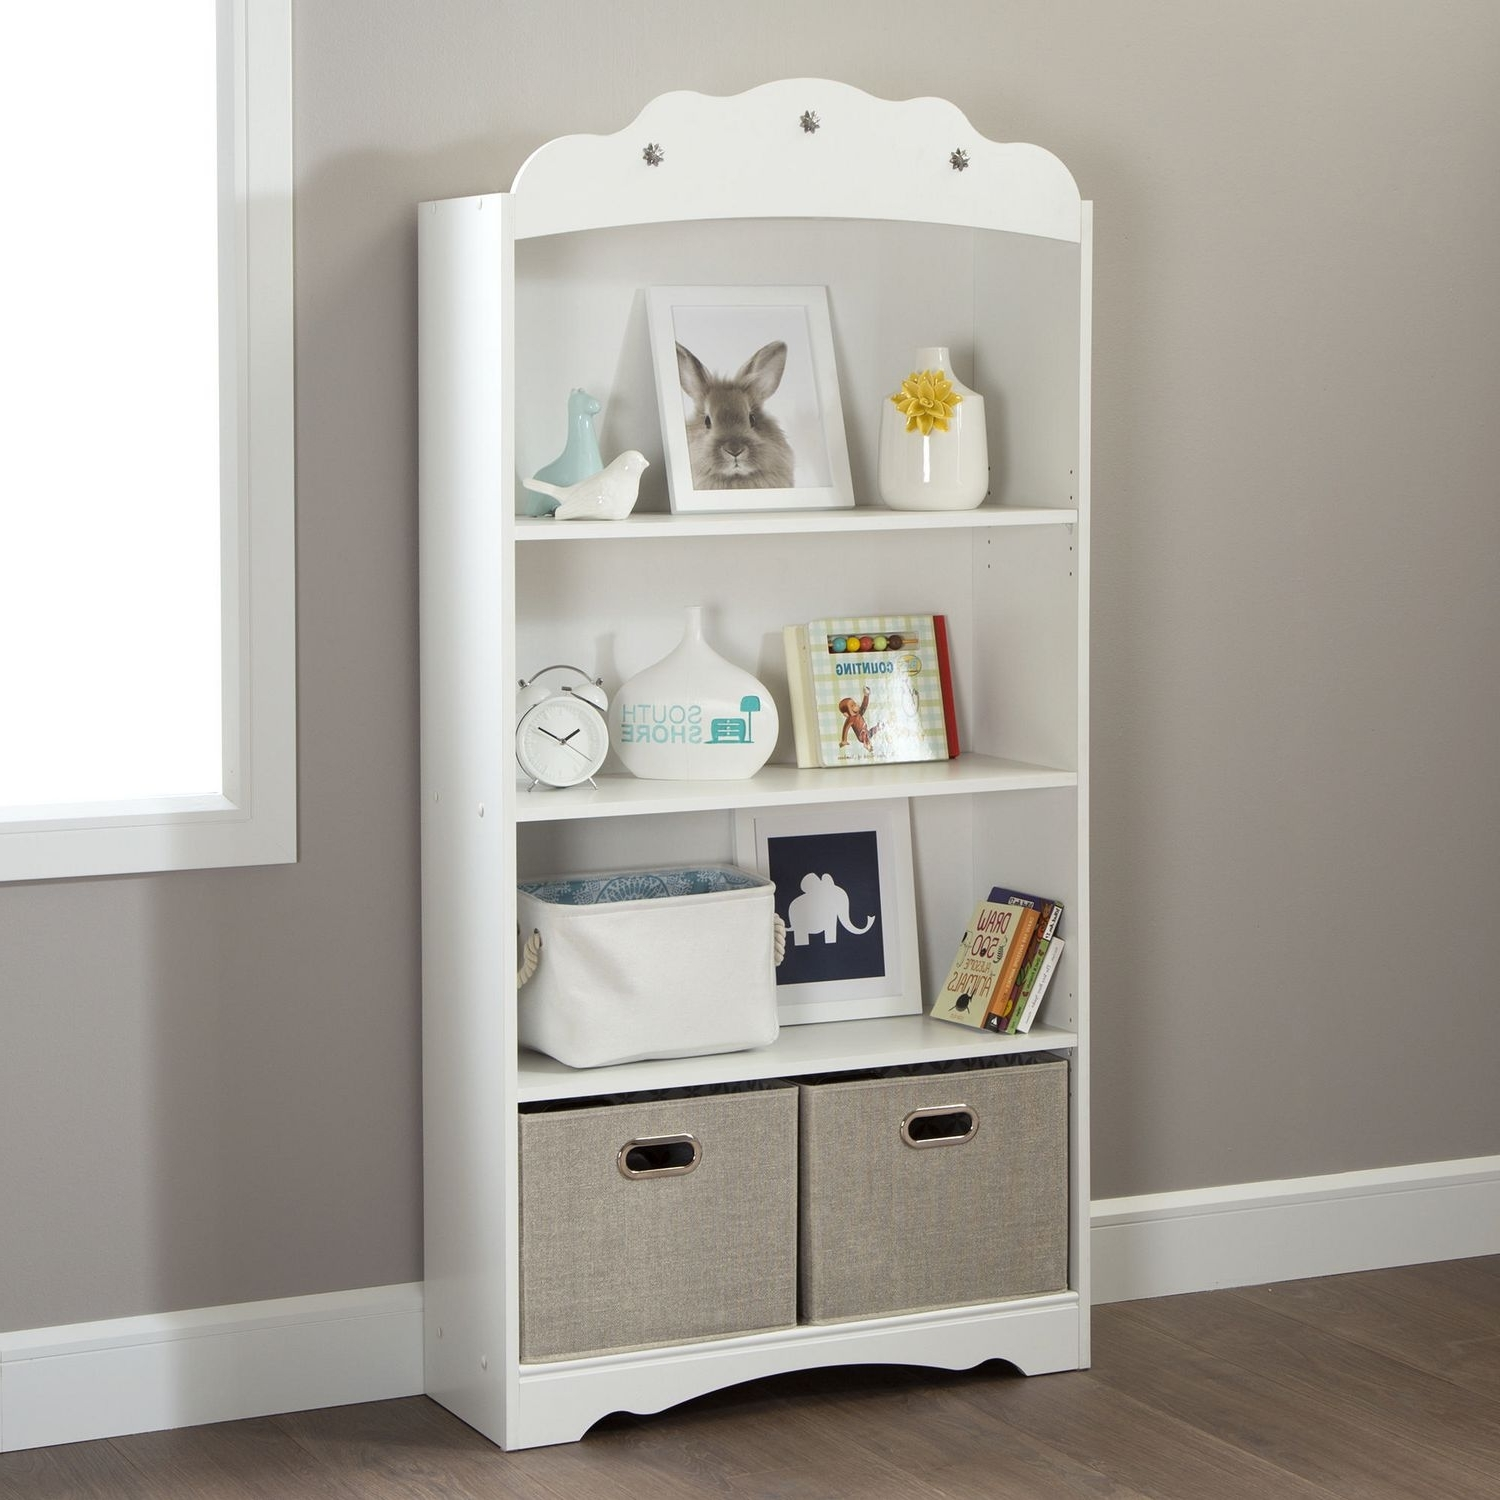 Walmart Canada For Well Liked South Shore Bookcases (View 5 of 15)